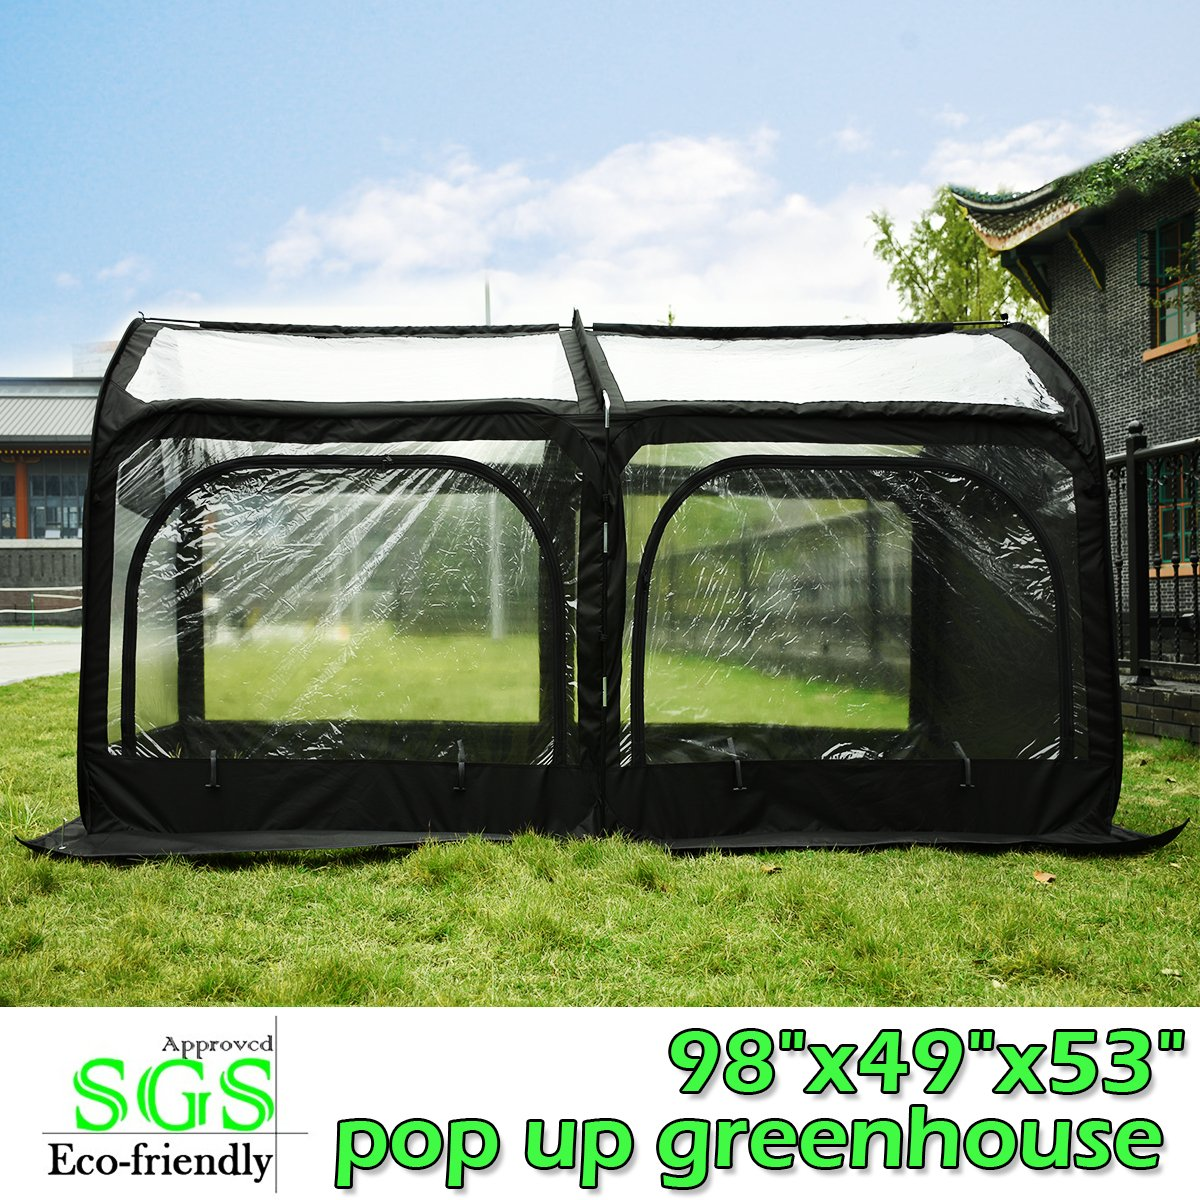 Quictent Pop up Greenhouse Passed SGS Test Eco-friendly Fiberglass Poles Overlong Cover Six Stakes 98''x49''x53'' Mini Portable Green House (Black) by Quictent